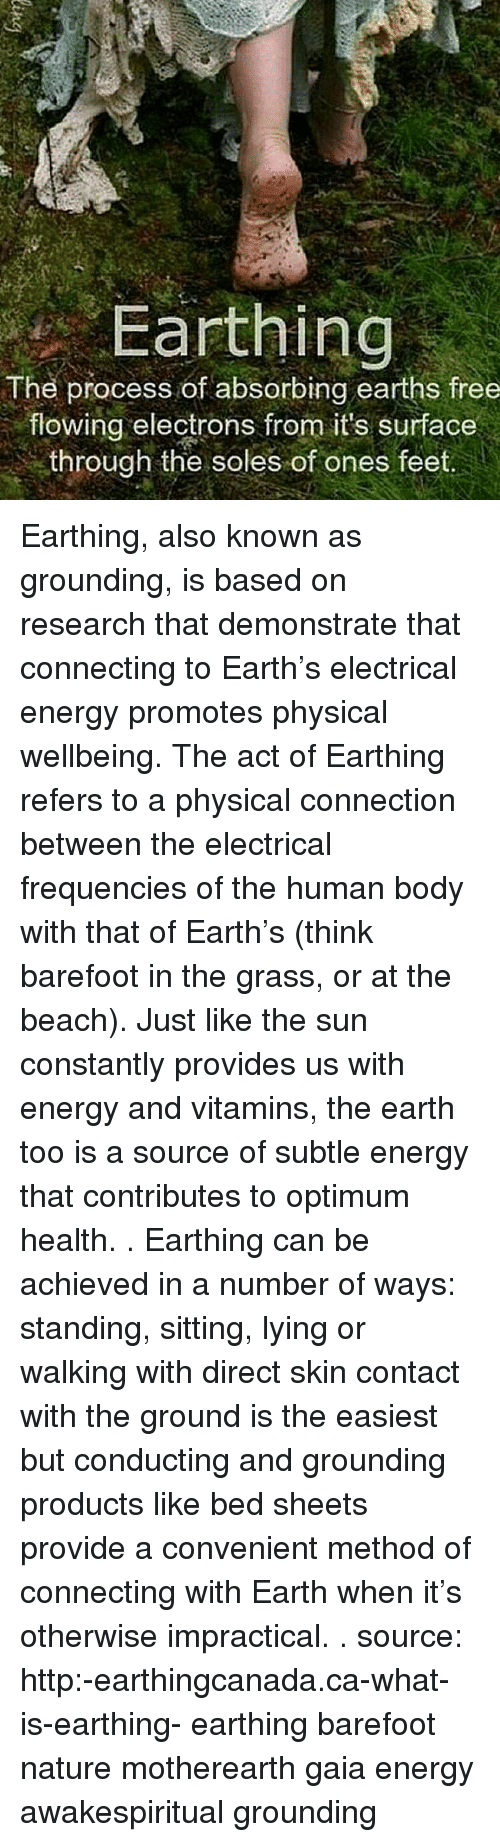 methodical: Earthing  The process of absorbing earths free  flowing electrons from its surface  through the soles of ones feet Earthing, also known as grounding, is based on research that demonstrate that connecting to Earth's electrical energy promotes physical wellbeing. The act of Earthing refers to a physical connection between the electrical frequencies of the human body with that of Earth's (think barefoot in the grass, or at the beach). Just like the sun constantly provides us with energy and vitamins, the earth too is a source of subtle energy that contributes to optimum health. . Earthing can be achieved in a number of ways: standing, sitting, lying or walking with direct skin contact with the ground is the easiest but conducting and grounding products like bed sheets provide a convenient method of connecting with Earth when it's otherwise impractical. . source: http:-earthingcanada.ca-what-is-earthing- earthing barefoot nature motherearth gaia energy awakespiritual grounding